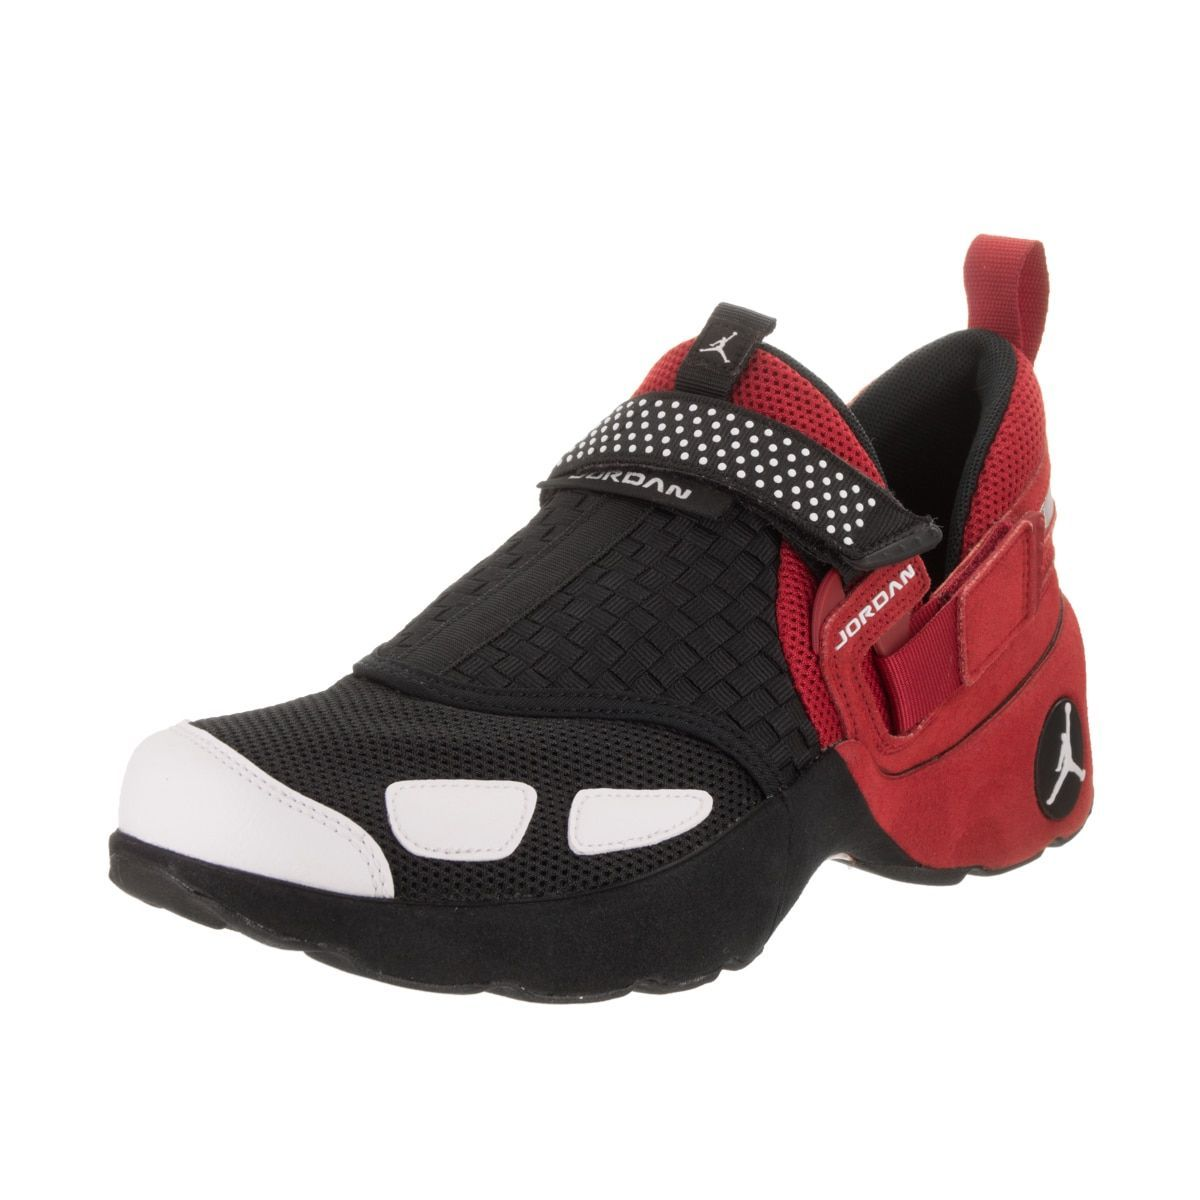 san francisco effca c9621 Jordan Men s Jordan Trunner LX OG Training Shoe